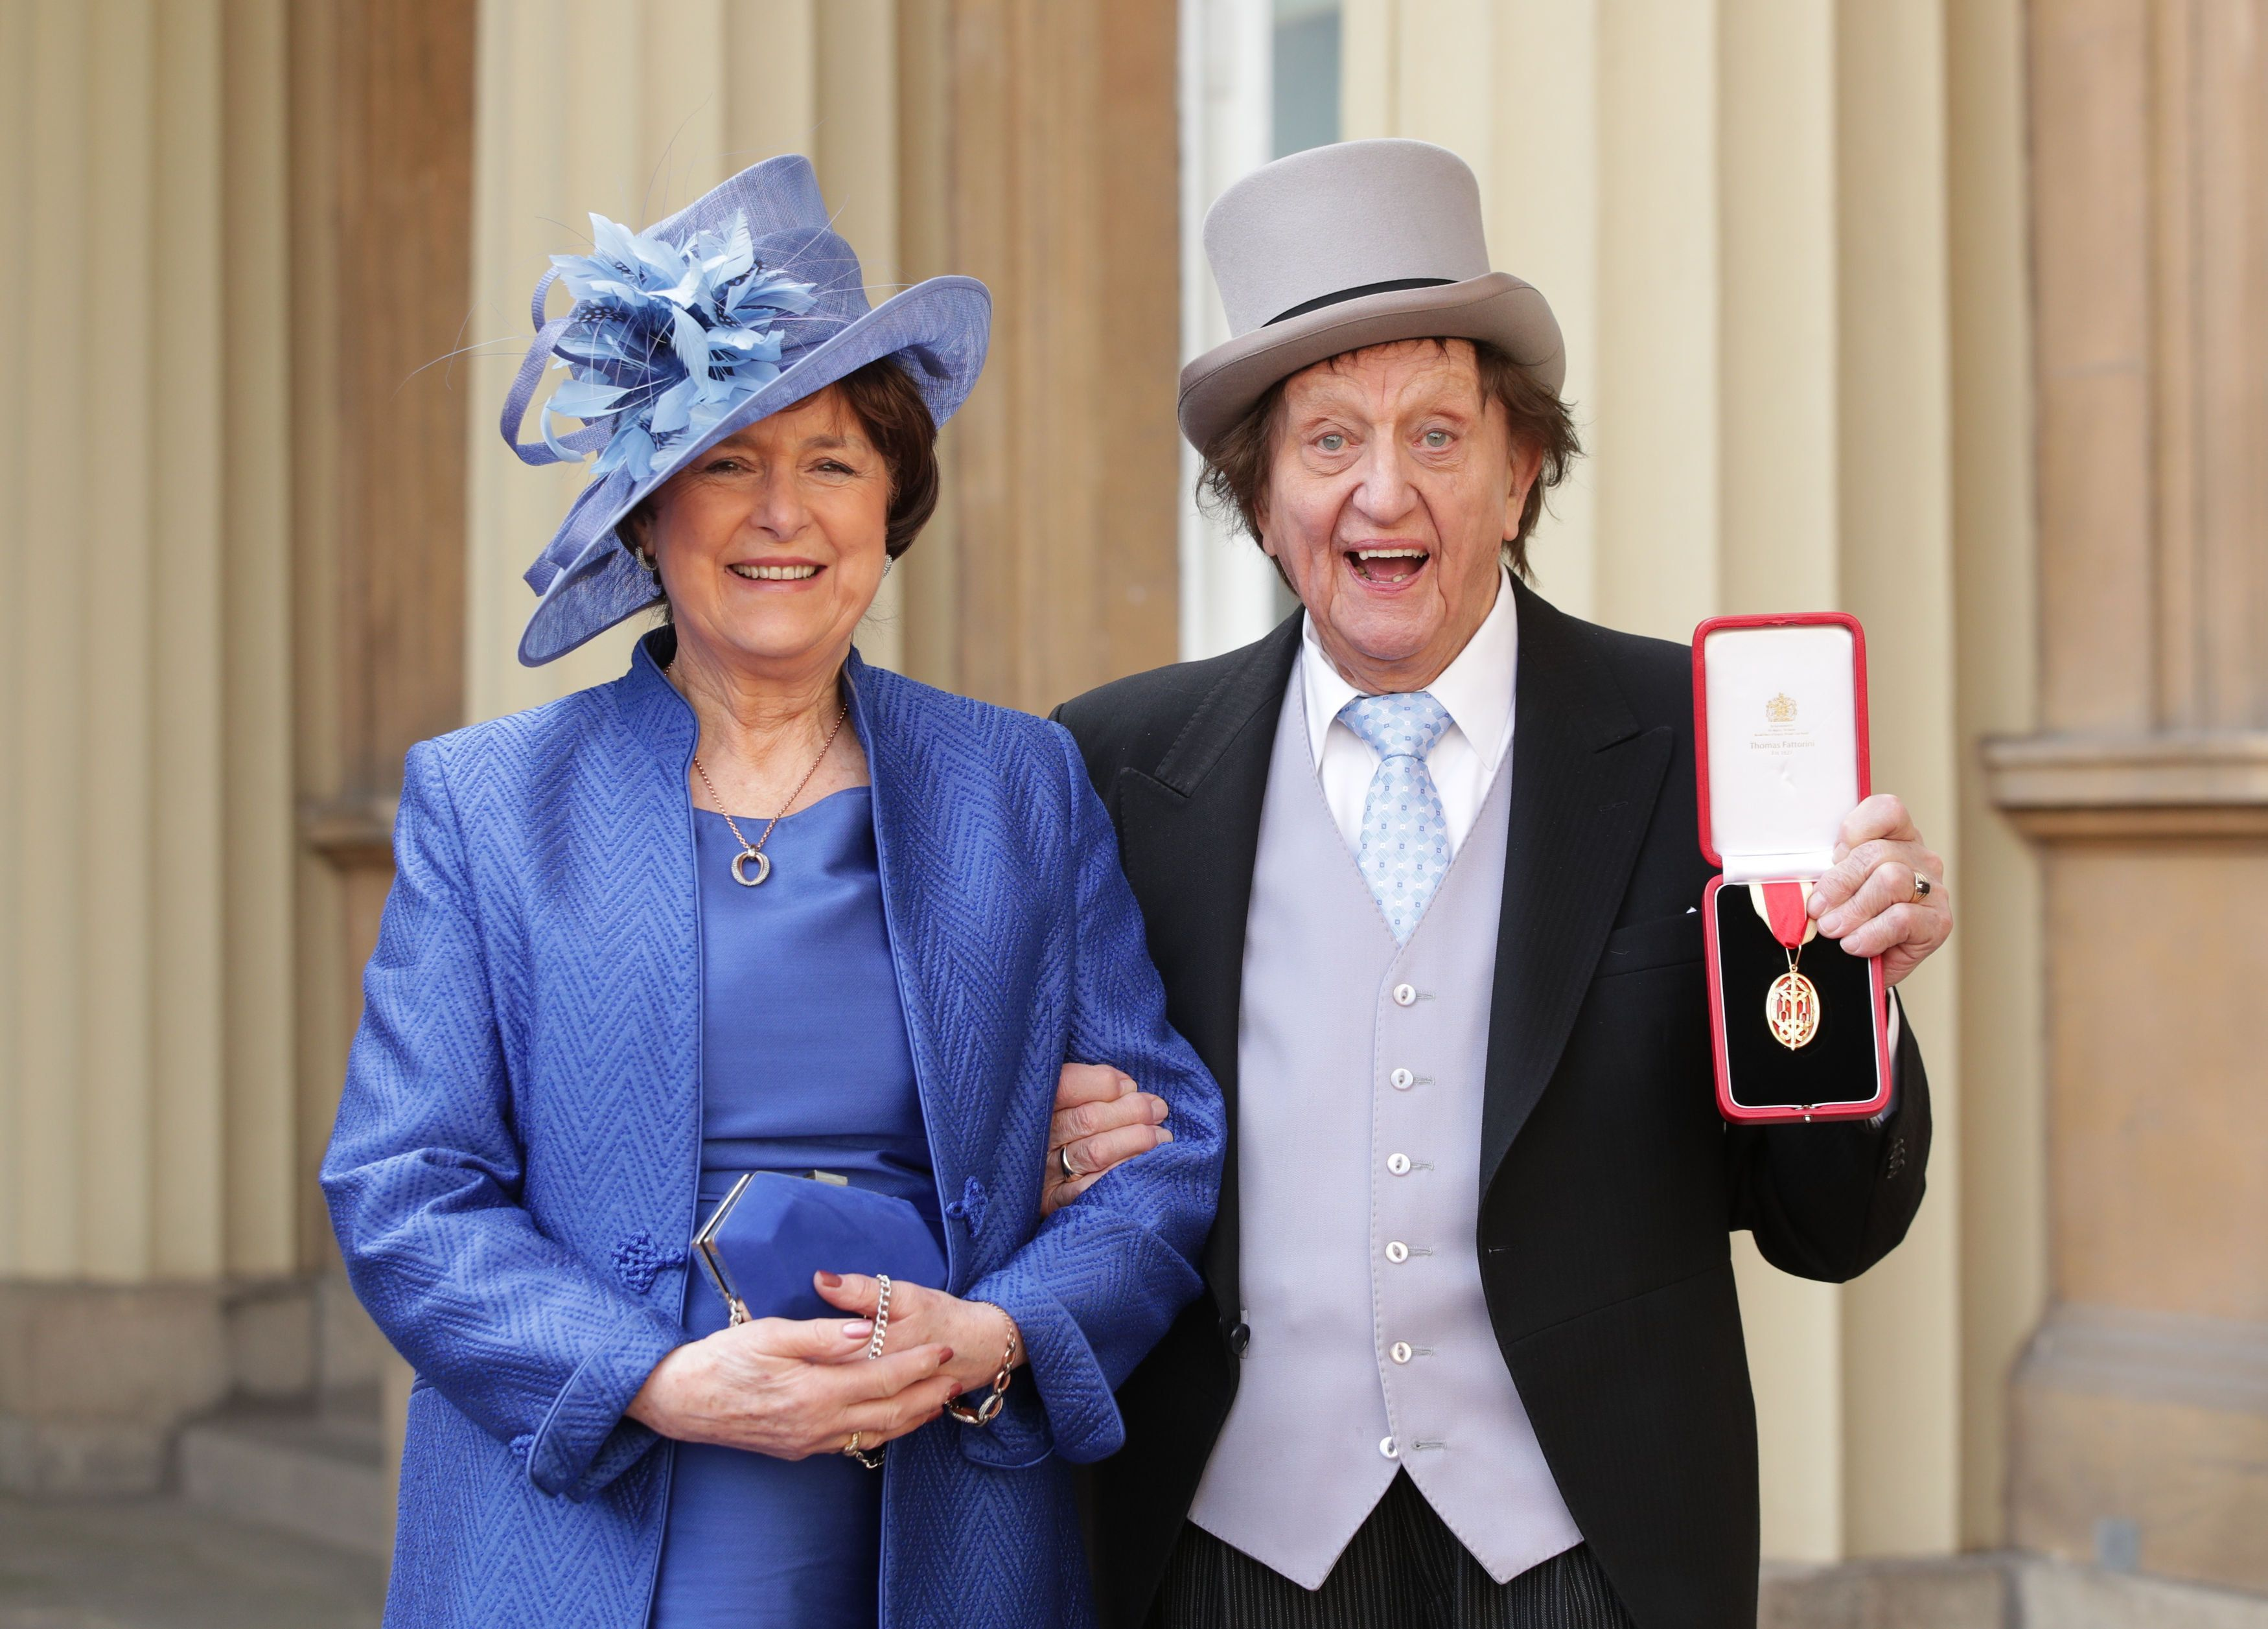 Ken Dodd's Wife, Anne, Says She's Been 'Overwhelmed' By Support Since Losing The